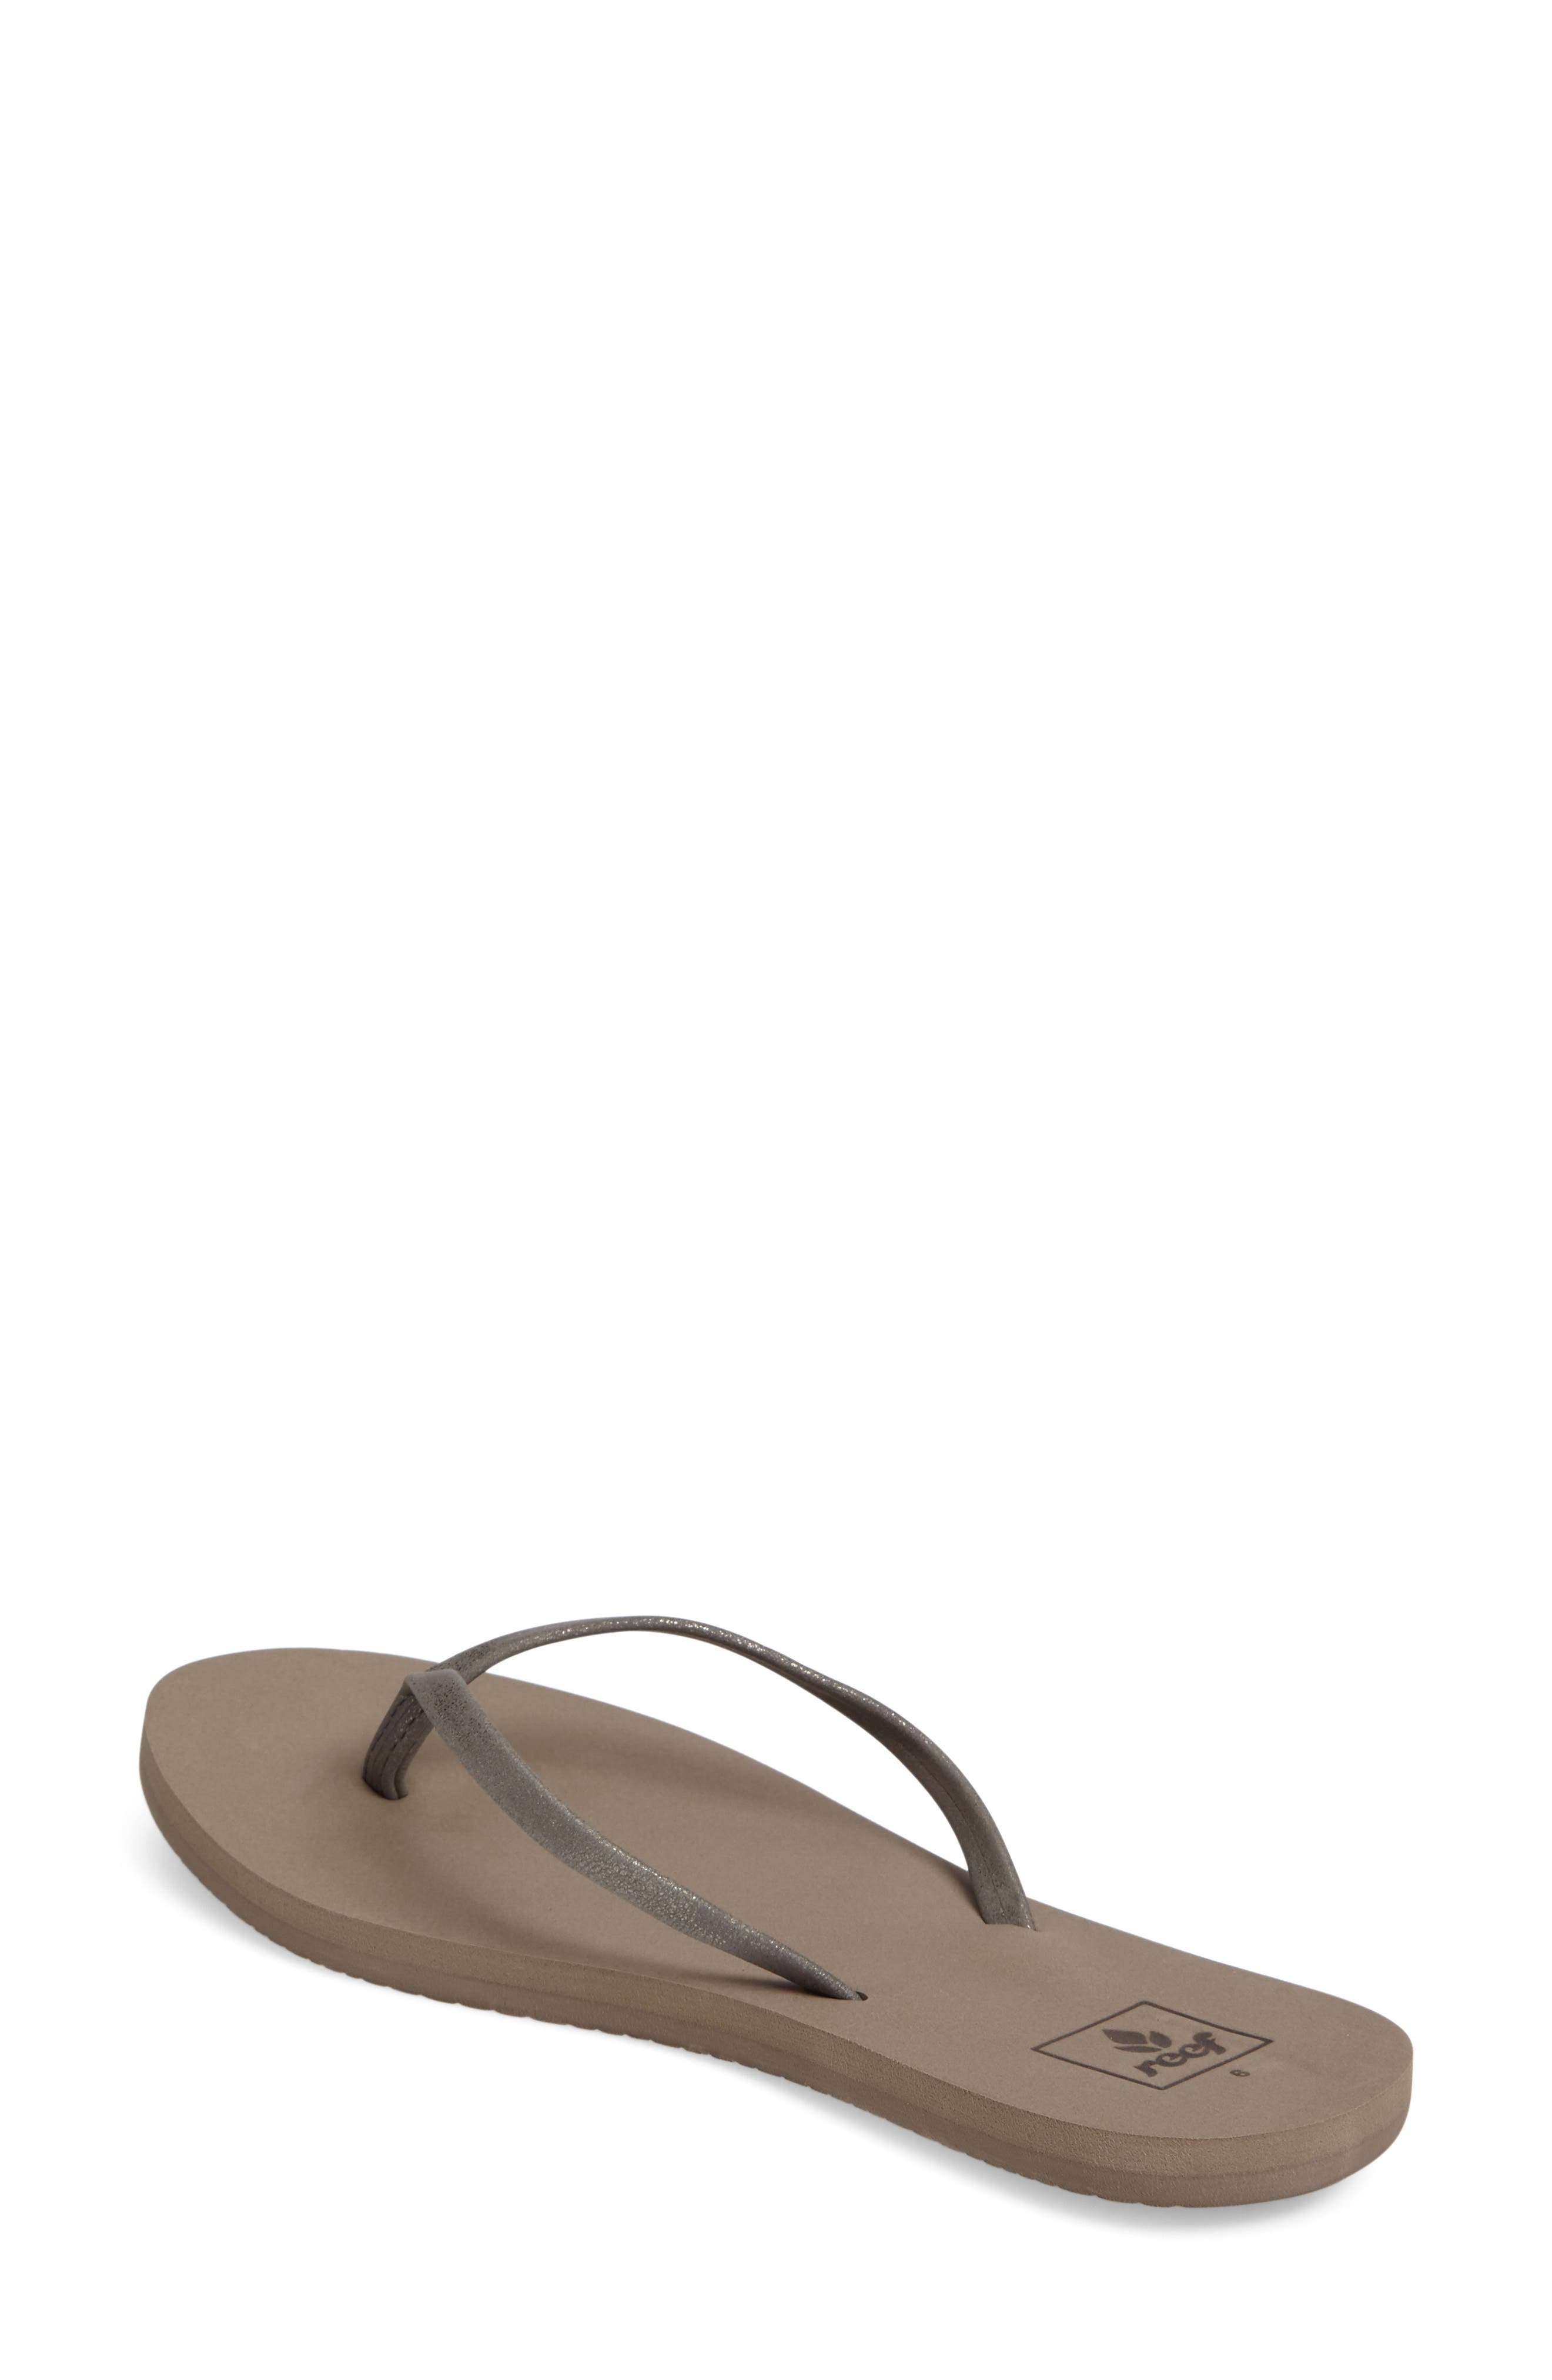 Bliss Nights Flip Flop,                             Alternate thumbnail 7, color,